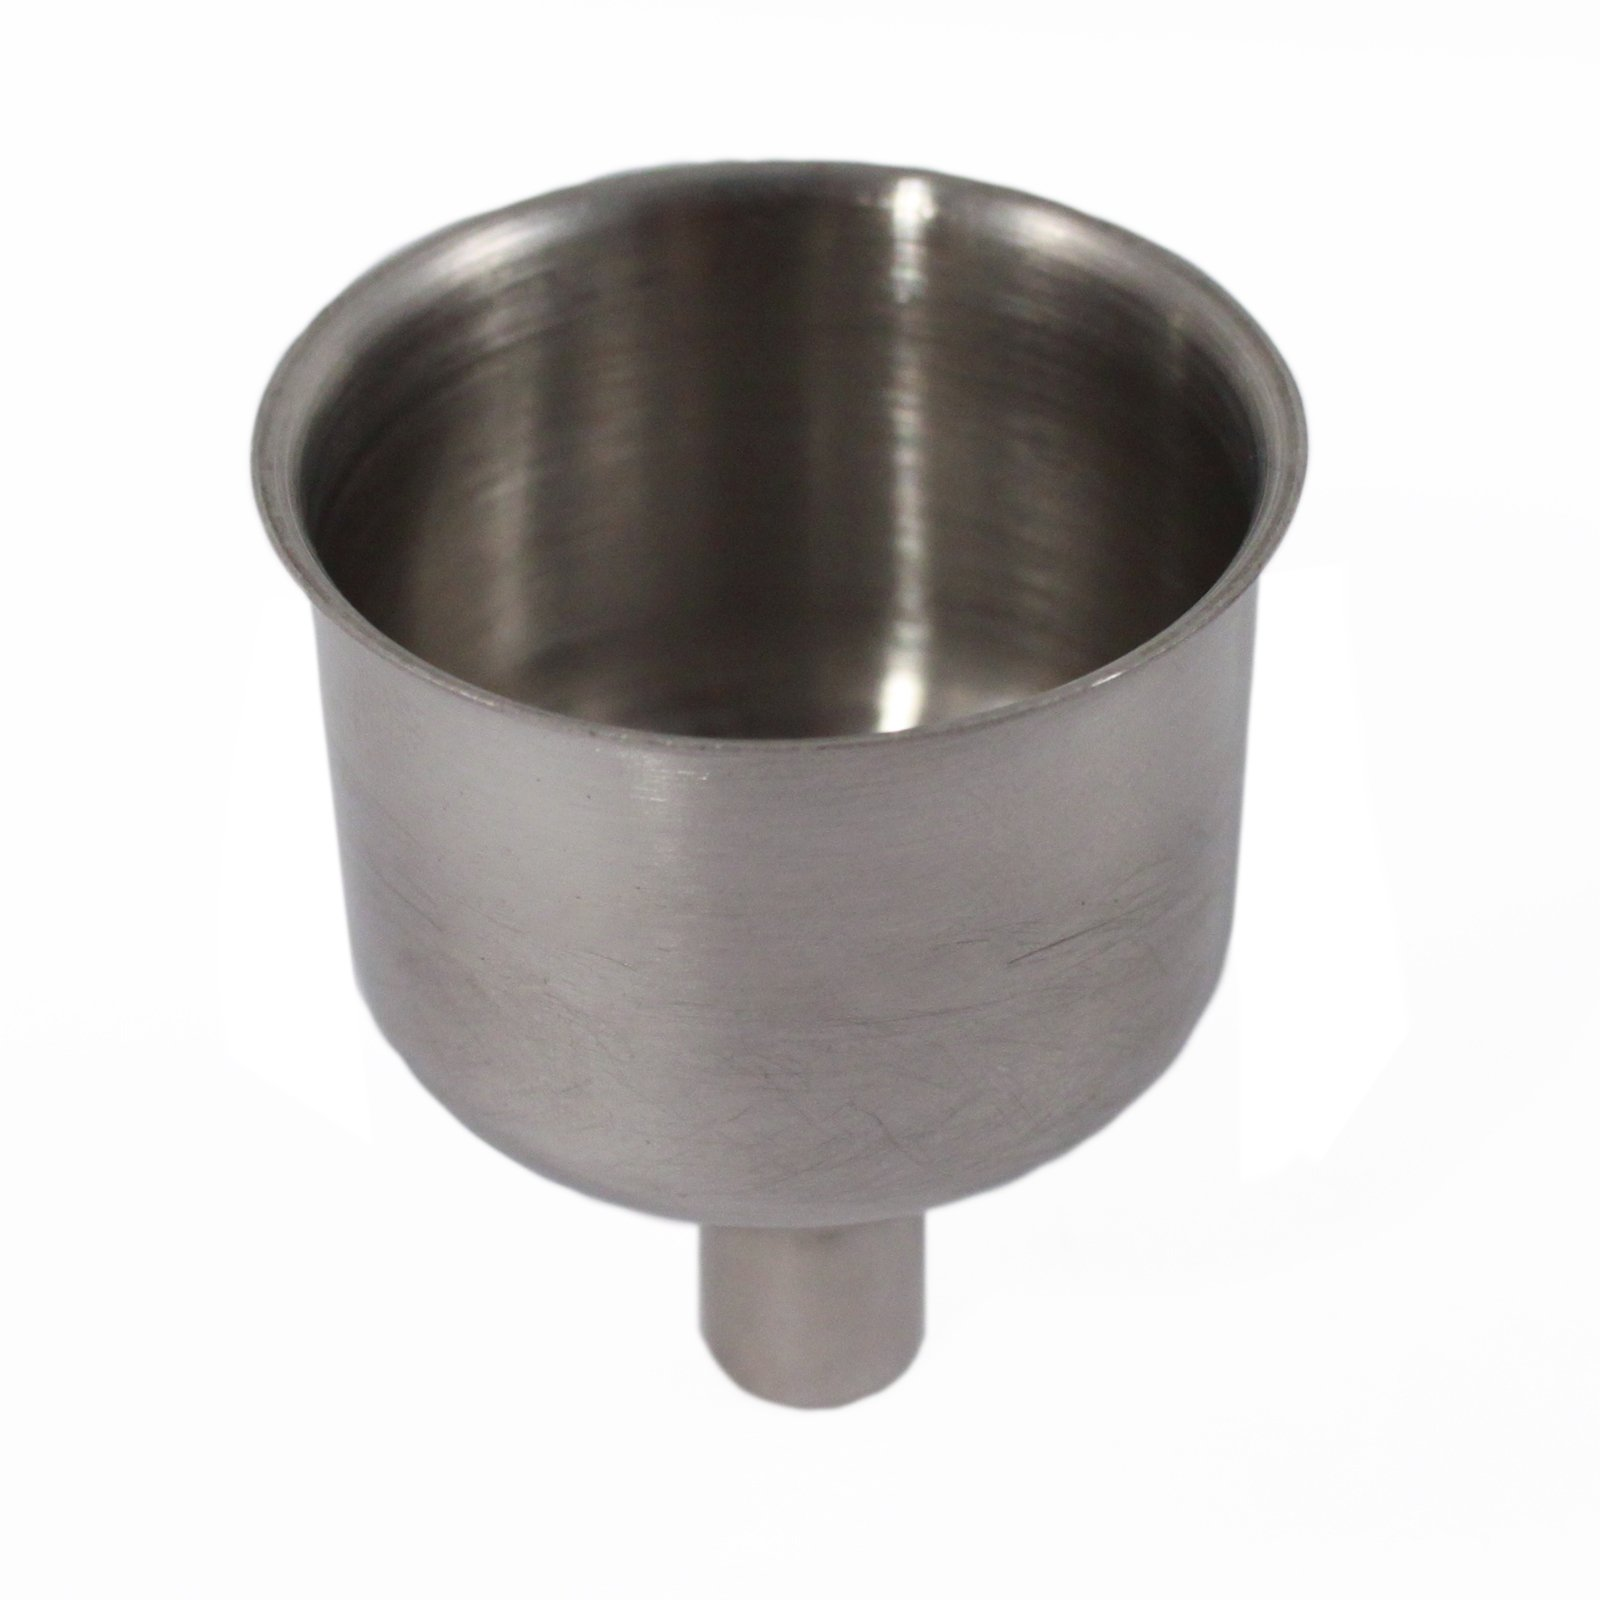 Universal Stainless Steel Funnel 2 Inch For Filling Small Bottles and Flasks